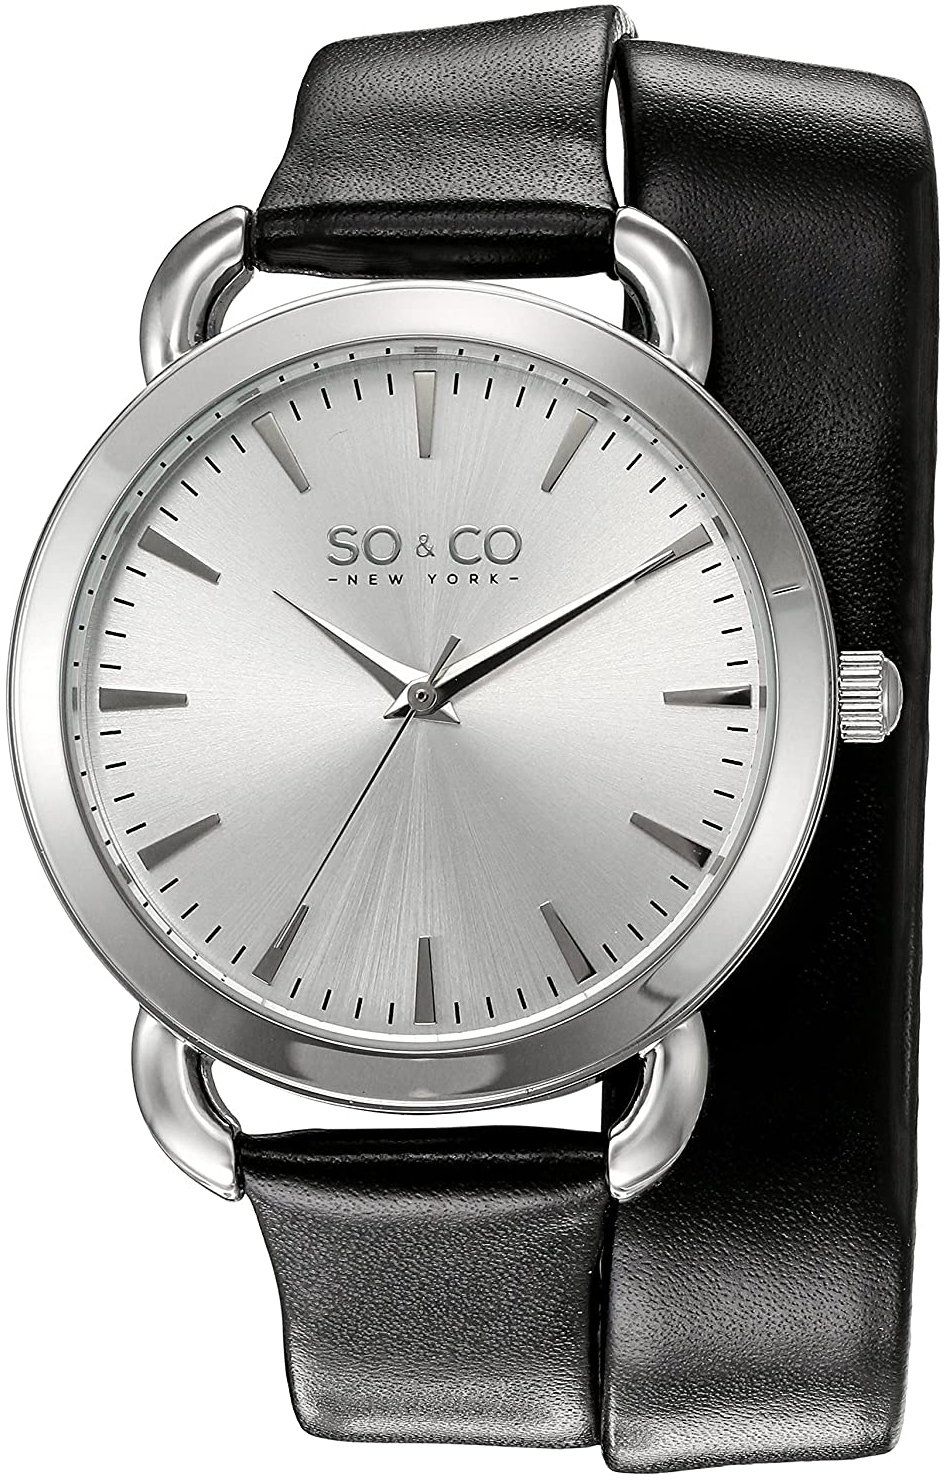 So & Co New York SoHo Dameklokke 5086.1 Sølvfarget/Lær Ø36 mm - So & Co New York